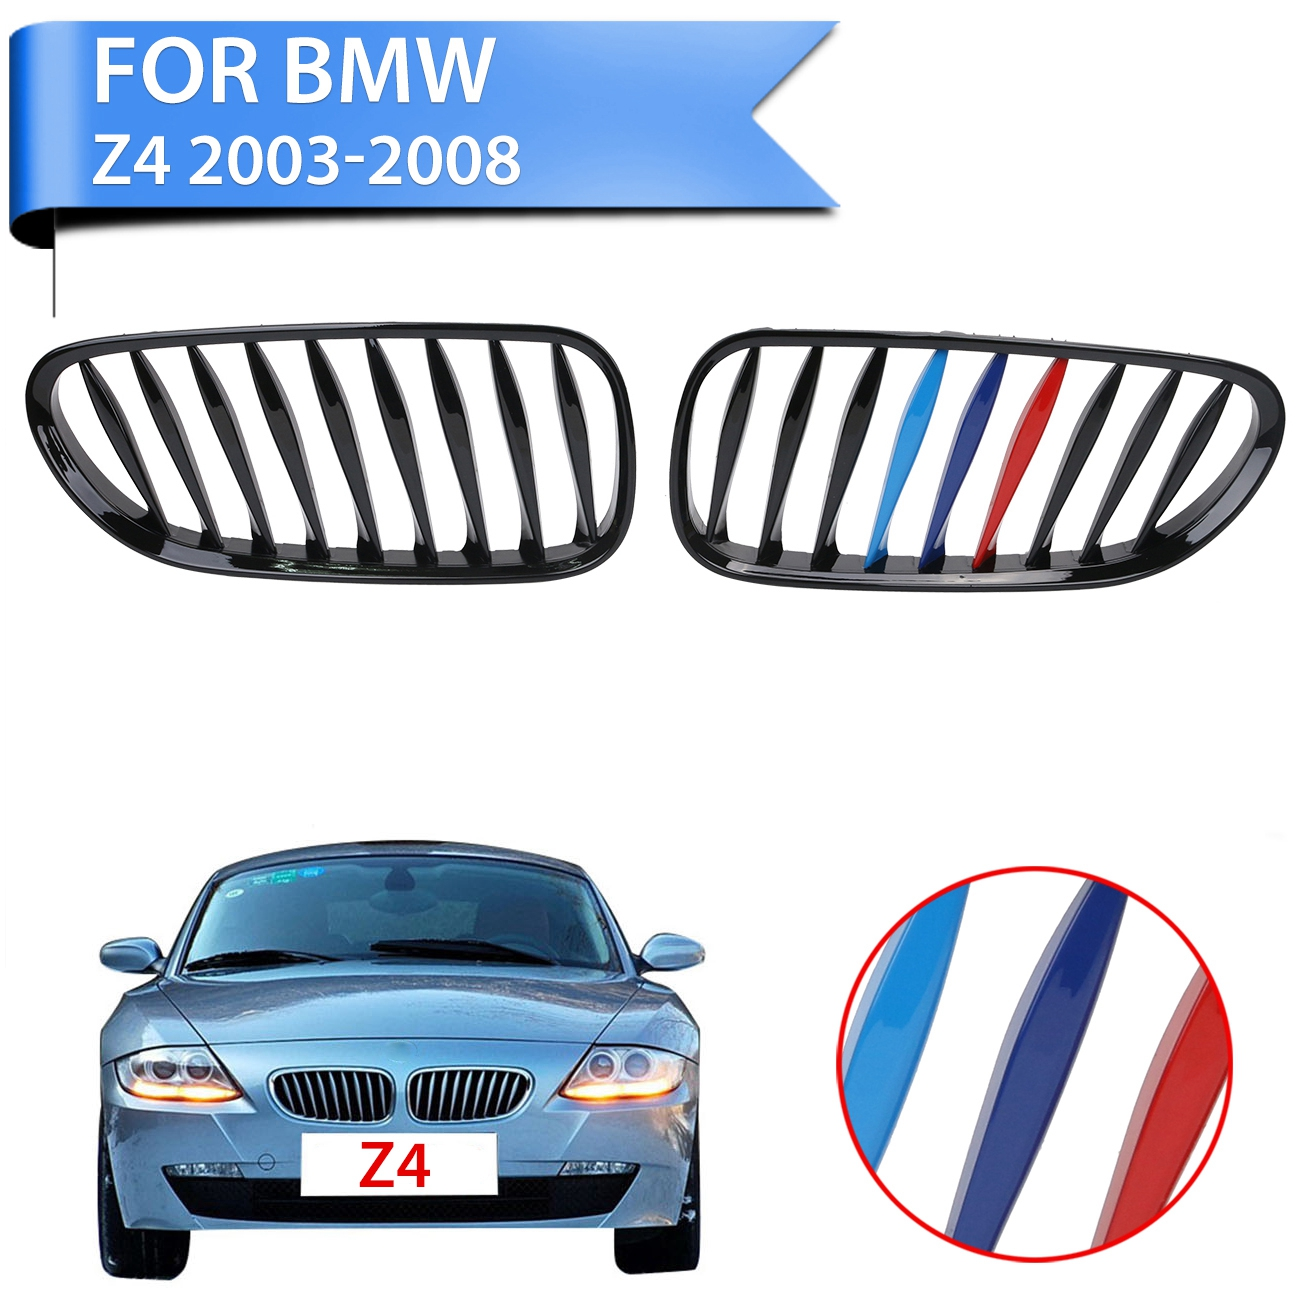 F30 Front Grille Abs Hood Grill Car Styling Covers For Bmw